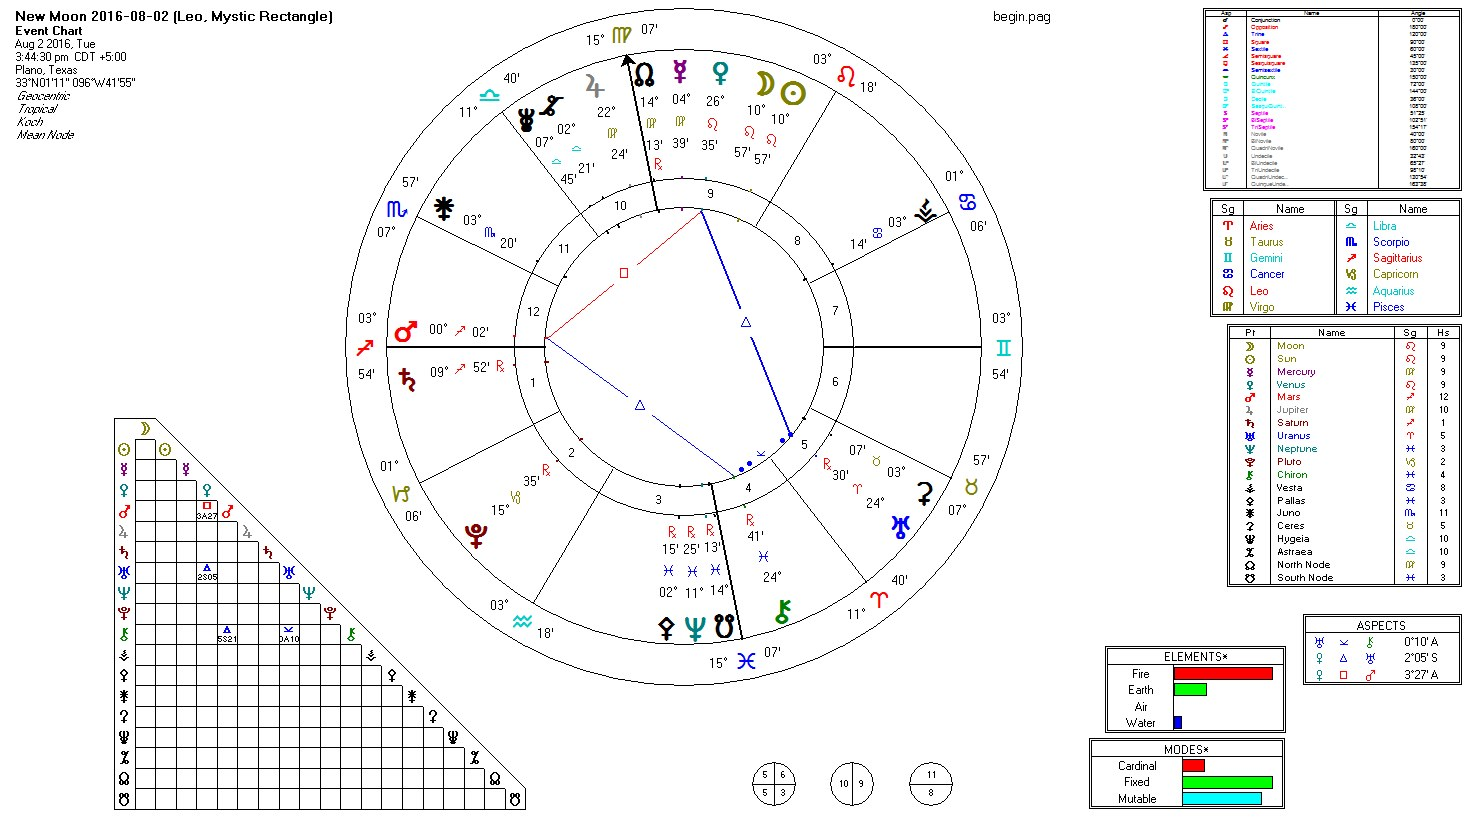 2016-08-02 New Moon (Leo, Hele)